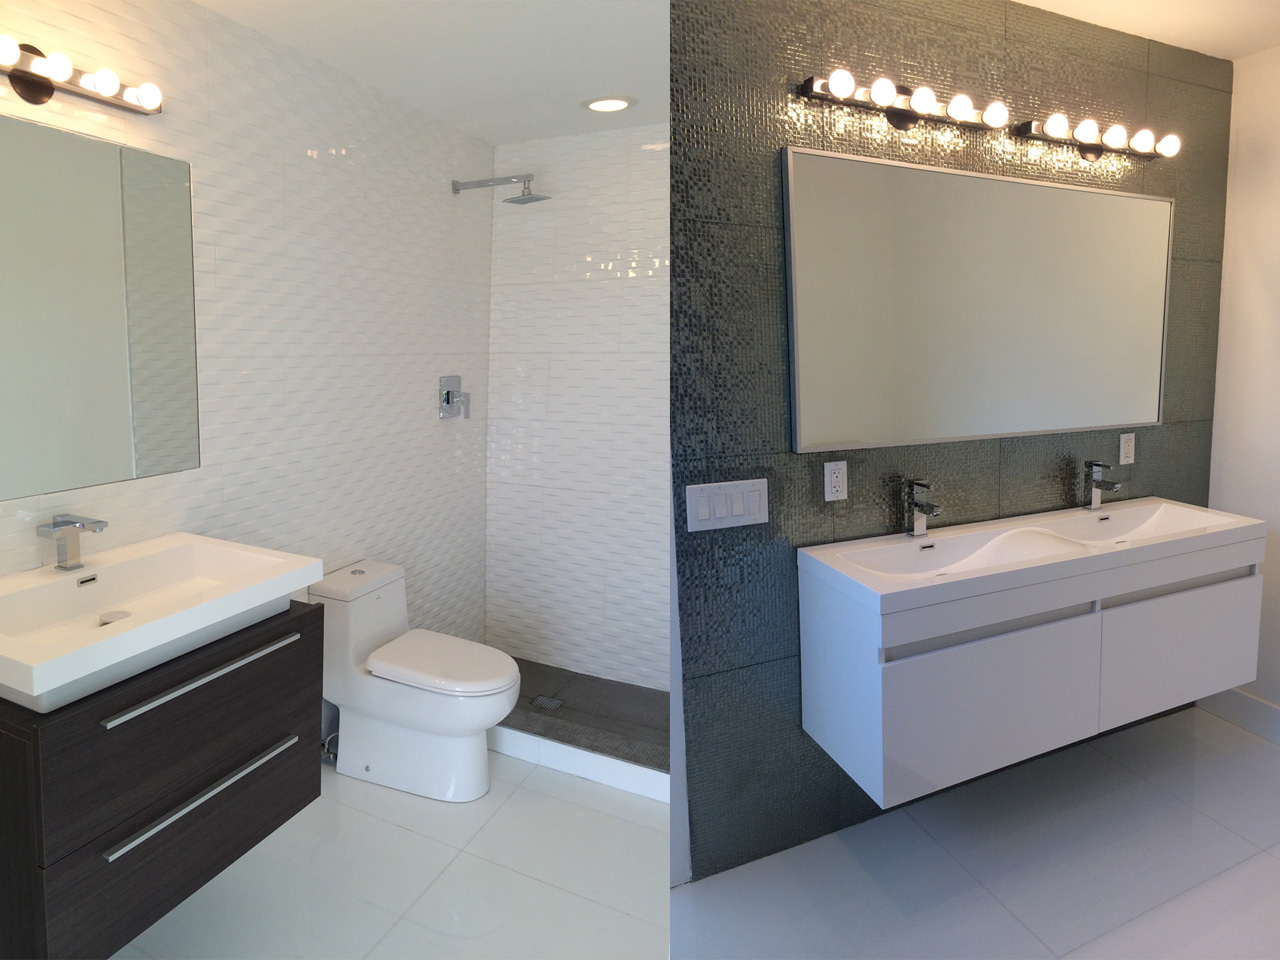 Fully renovated bathrooms throughout this waterfront villa in North Miami